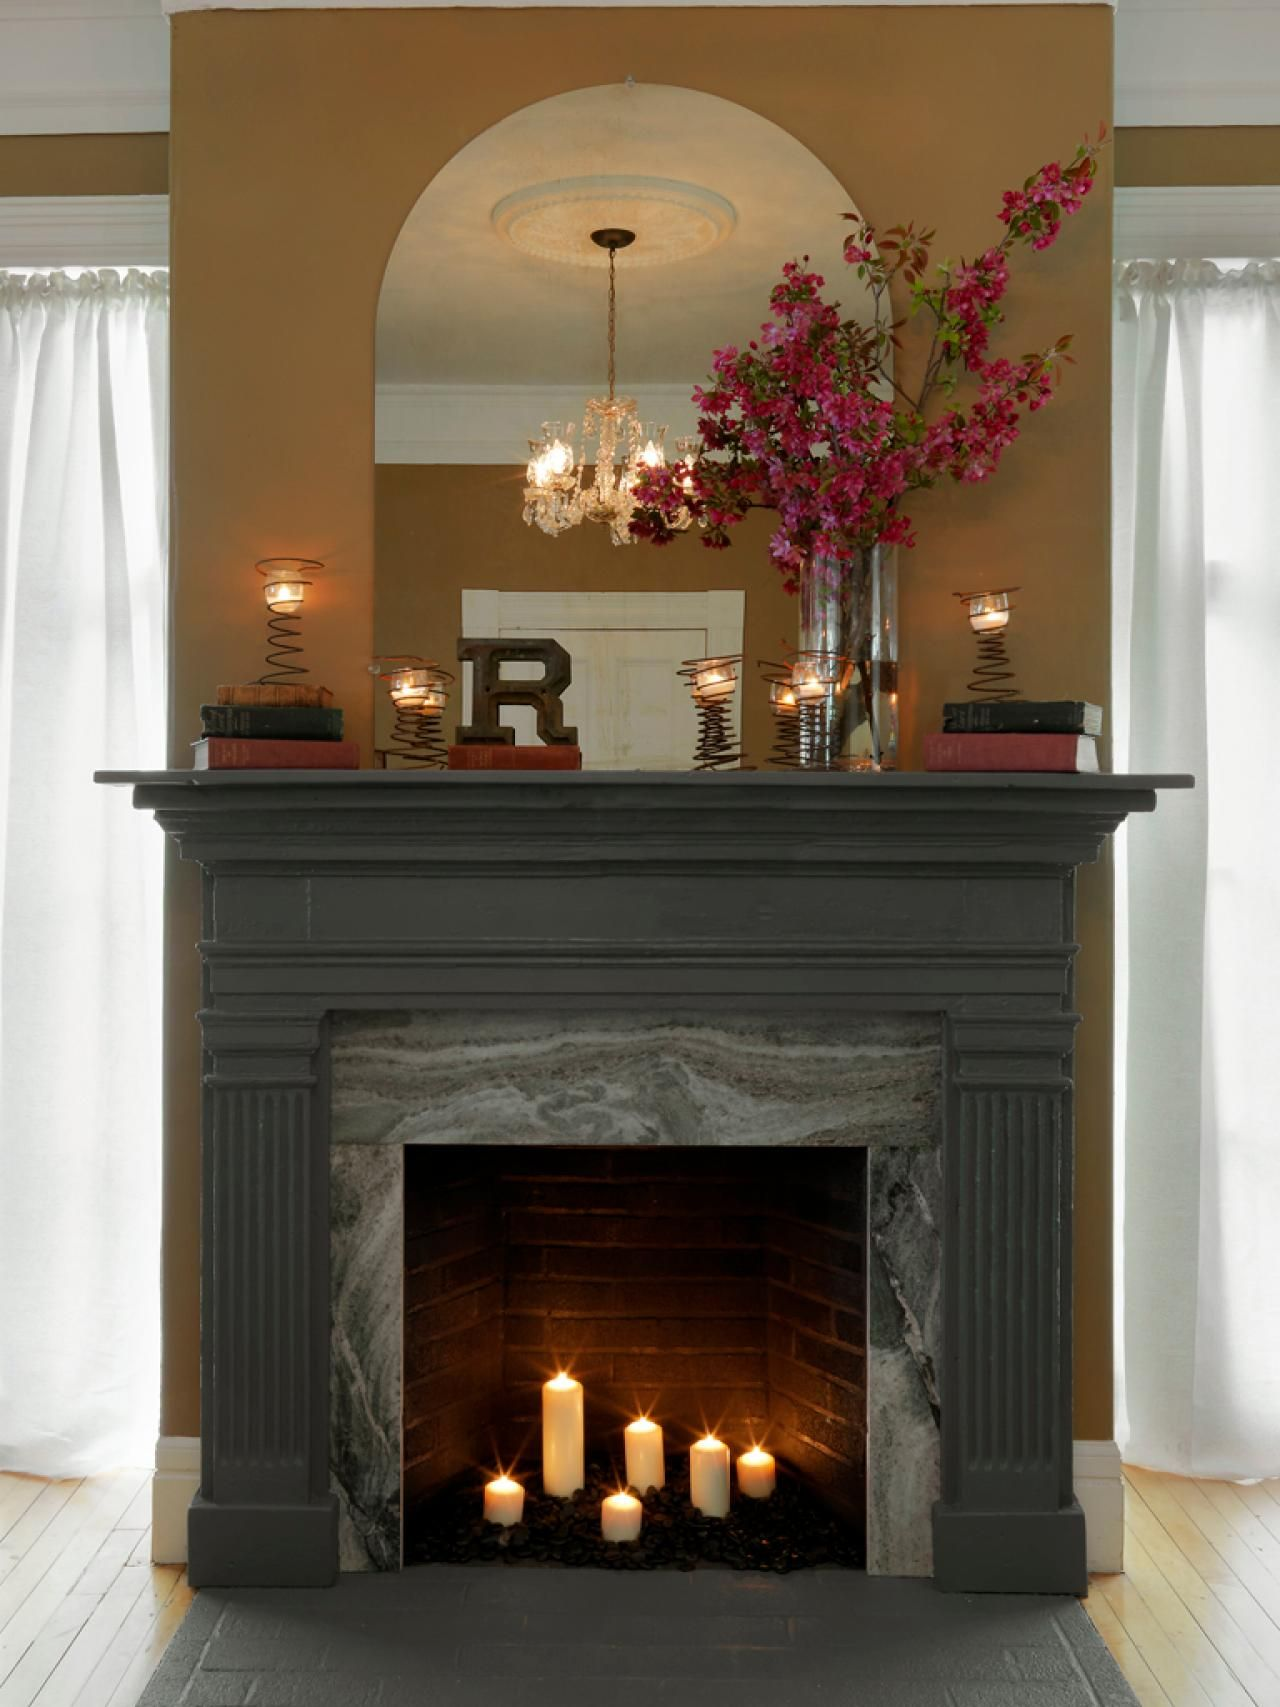 Dorable Fireplace Frame Ideas - Picture Frame Ideas ...